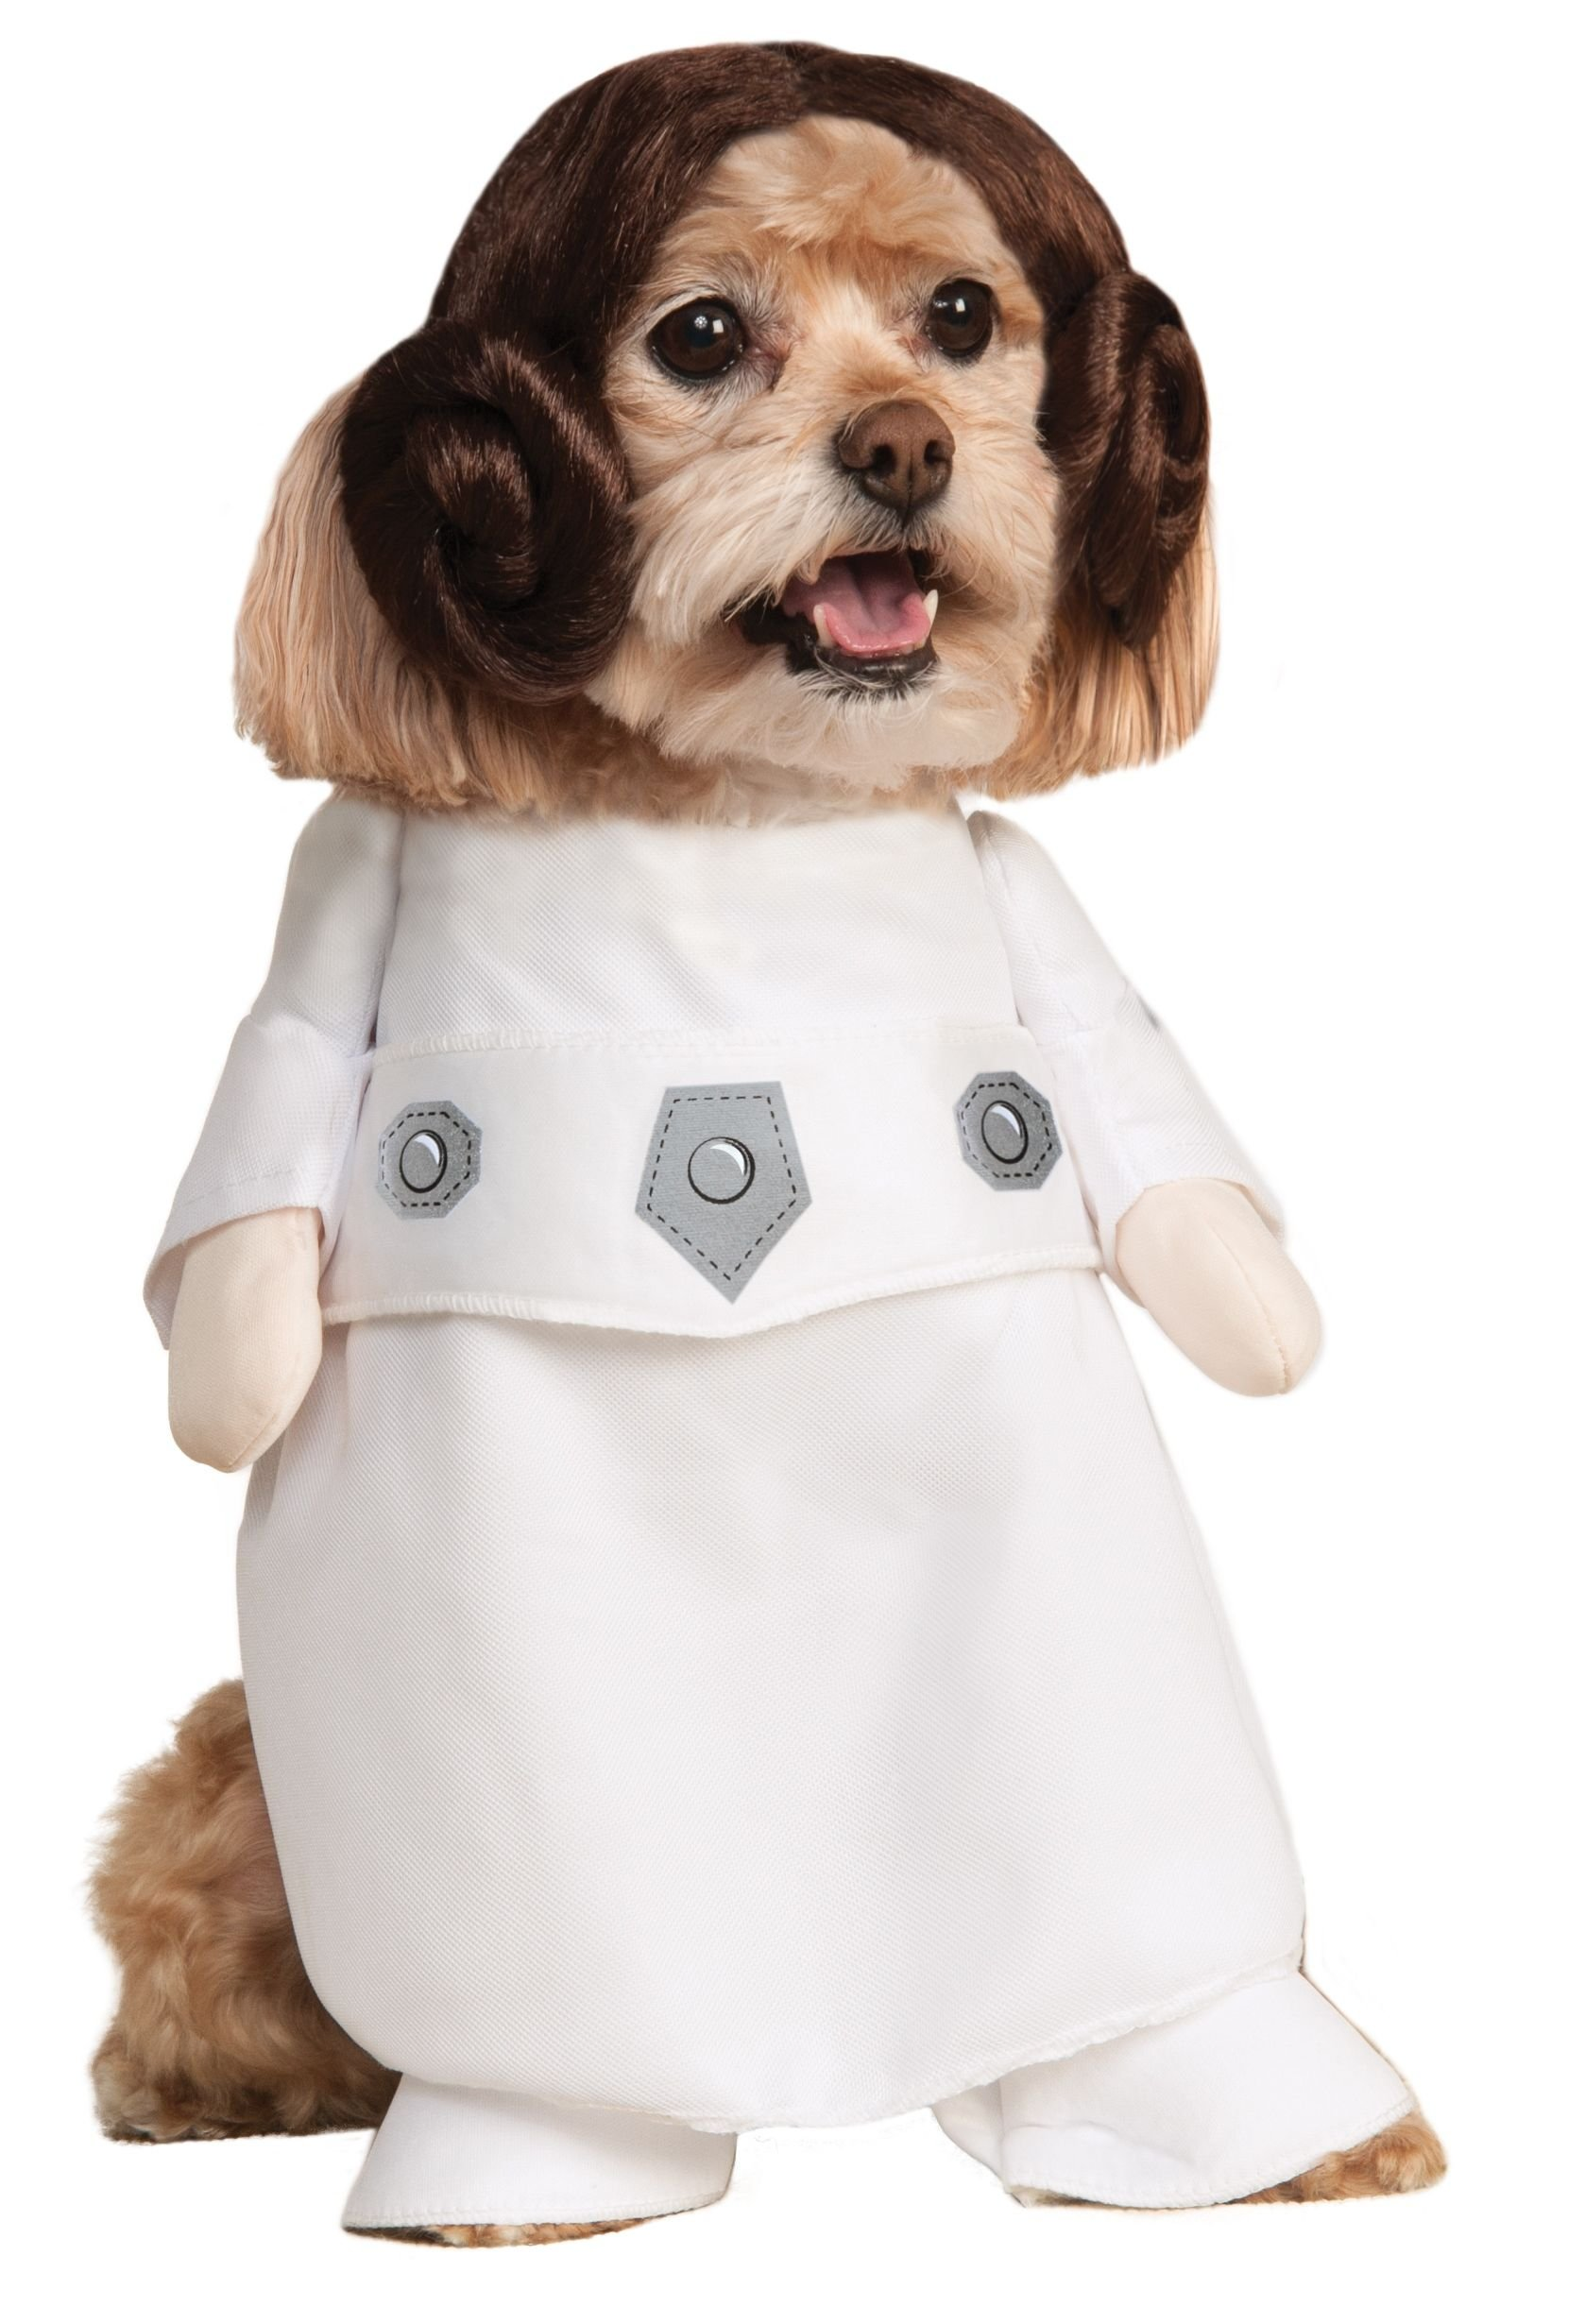 Rubies Costume Star Wars Collection Pet Costume, Princess Leia, Small by Rubie's